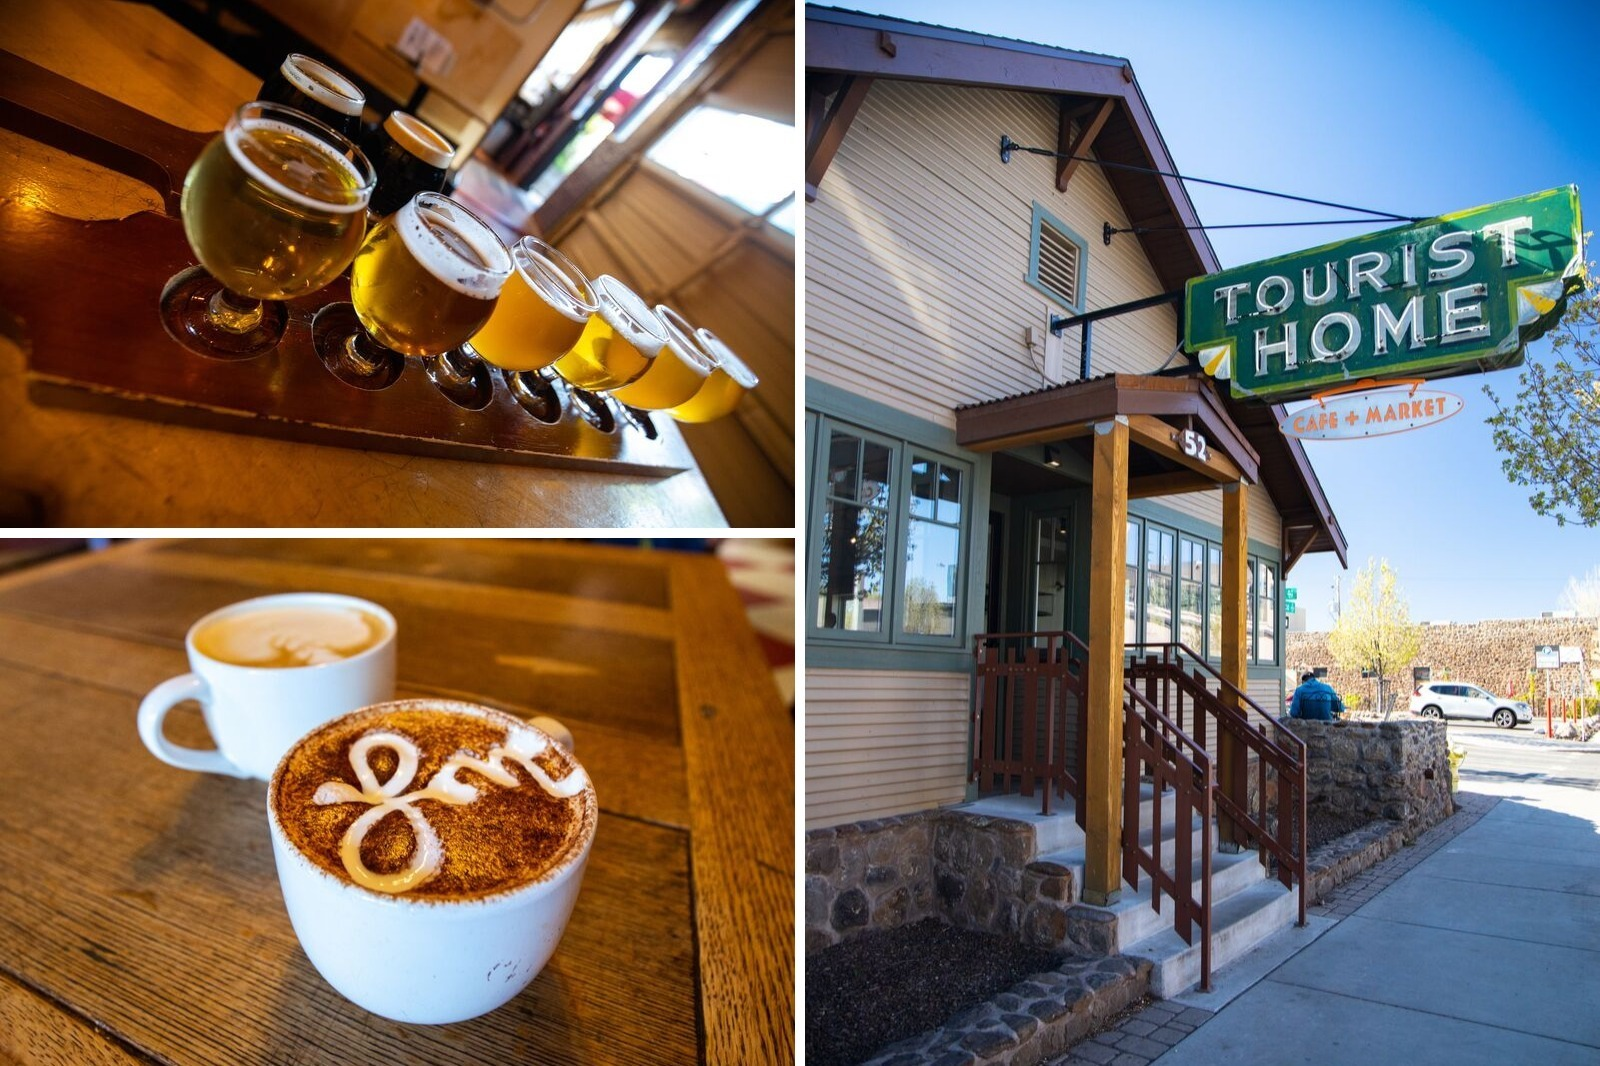 There's lots to do, and eat in Flagstaff